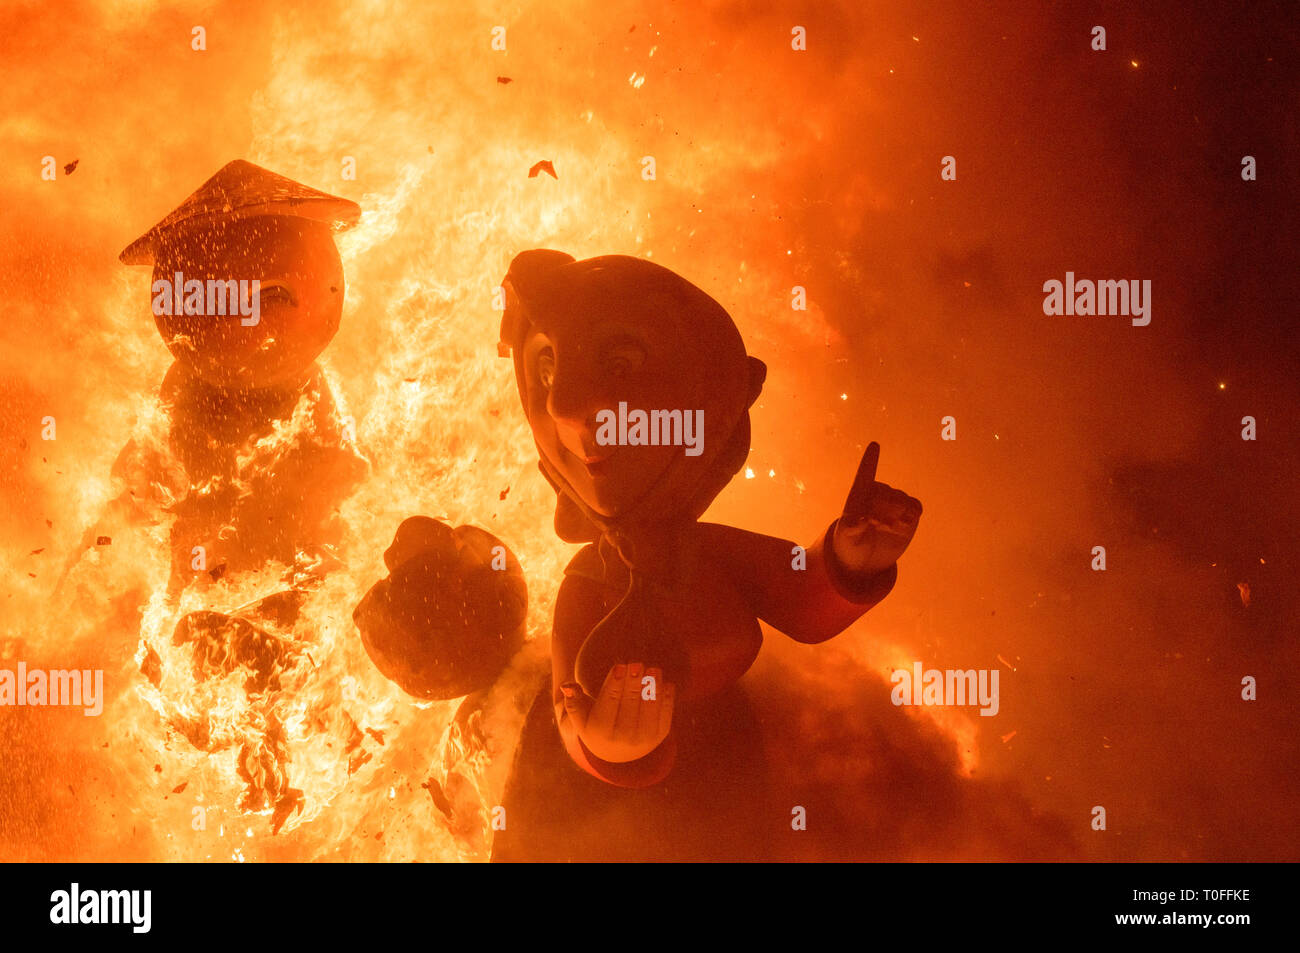 Valencia, Spain. 19th March, 2019. The Valencians fire their piestats by burning the monument on the night of San José. The firemen are in charge of controlling the flames. Carcaixent, Valencia, Spain. Credit: Salva Garrigues/Alamy Live News - Stock Image